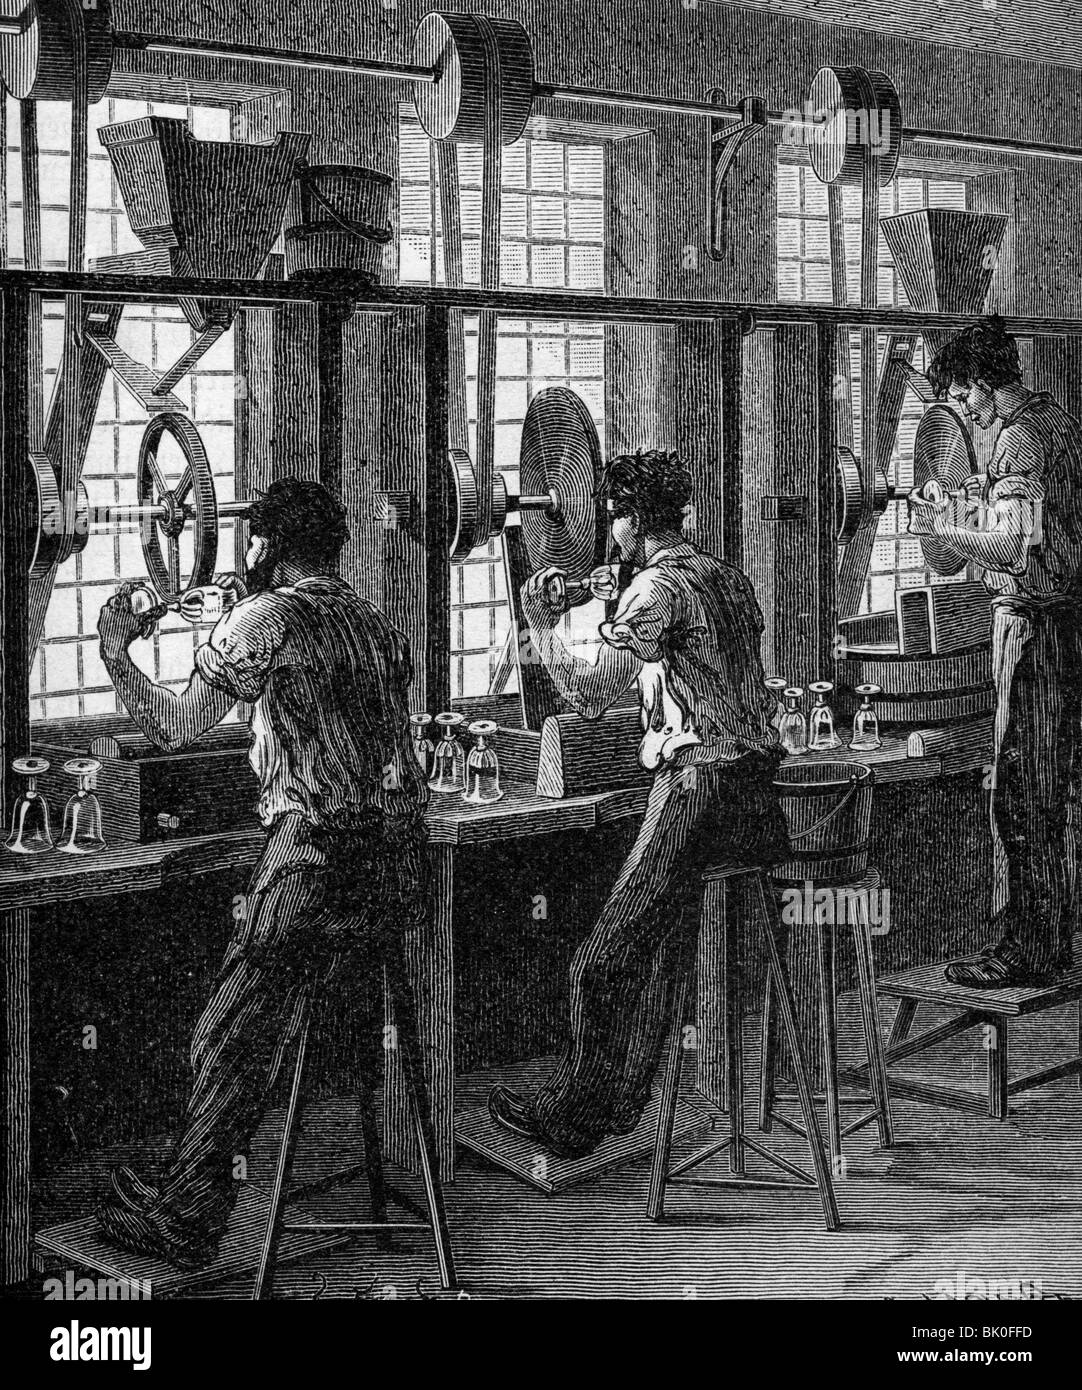 industry, glass, grinding and polishing of crystal glass, wood engraving, Germany, 19th century, factory, production, - Stock Image